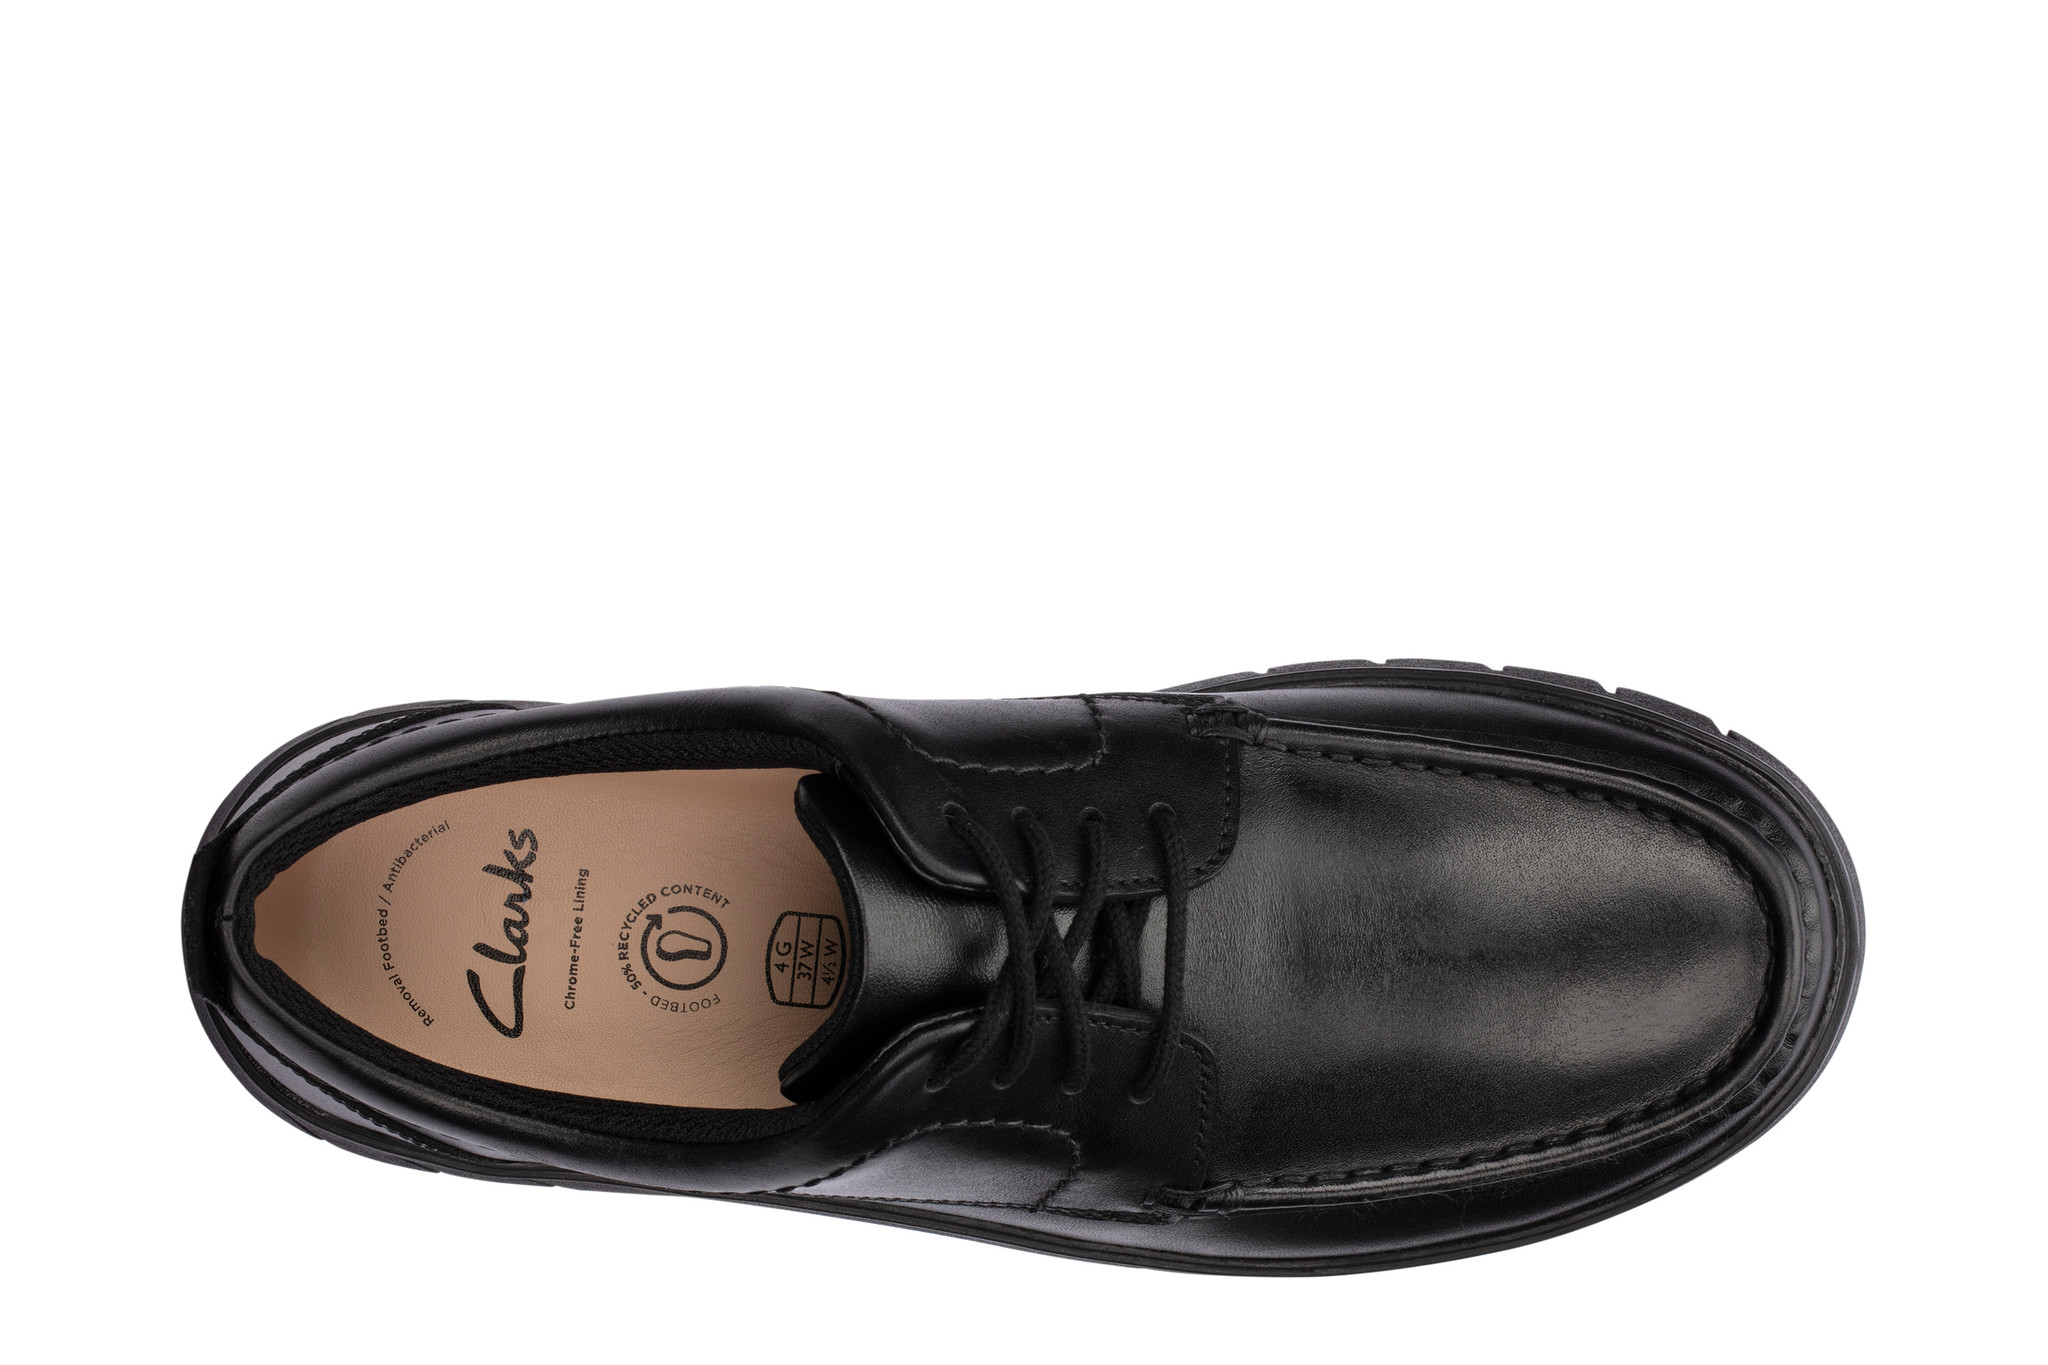 Clarks Branch Lace Youth